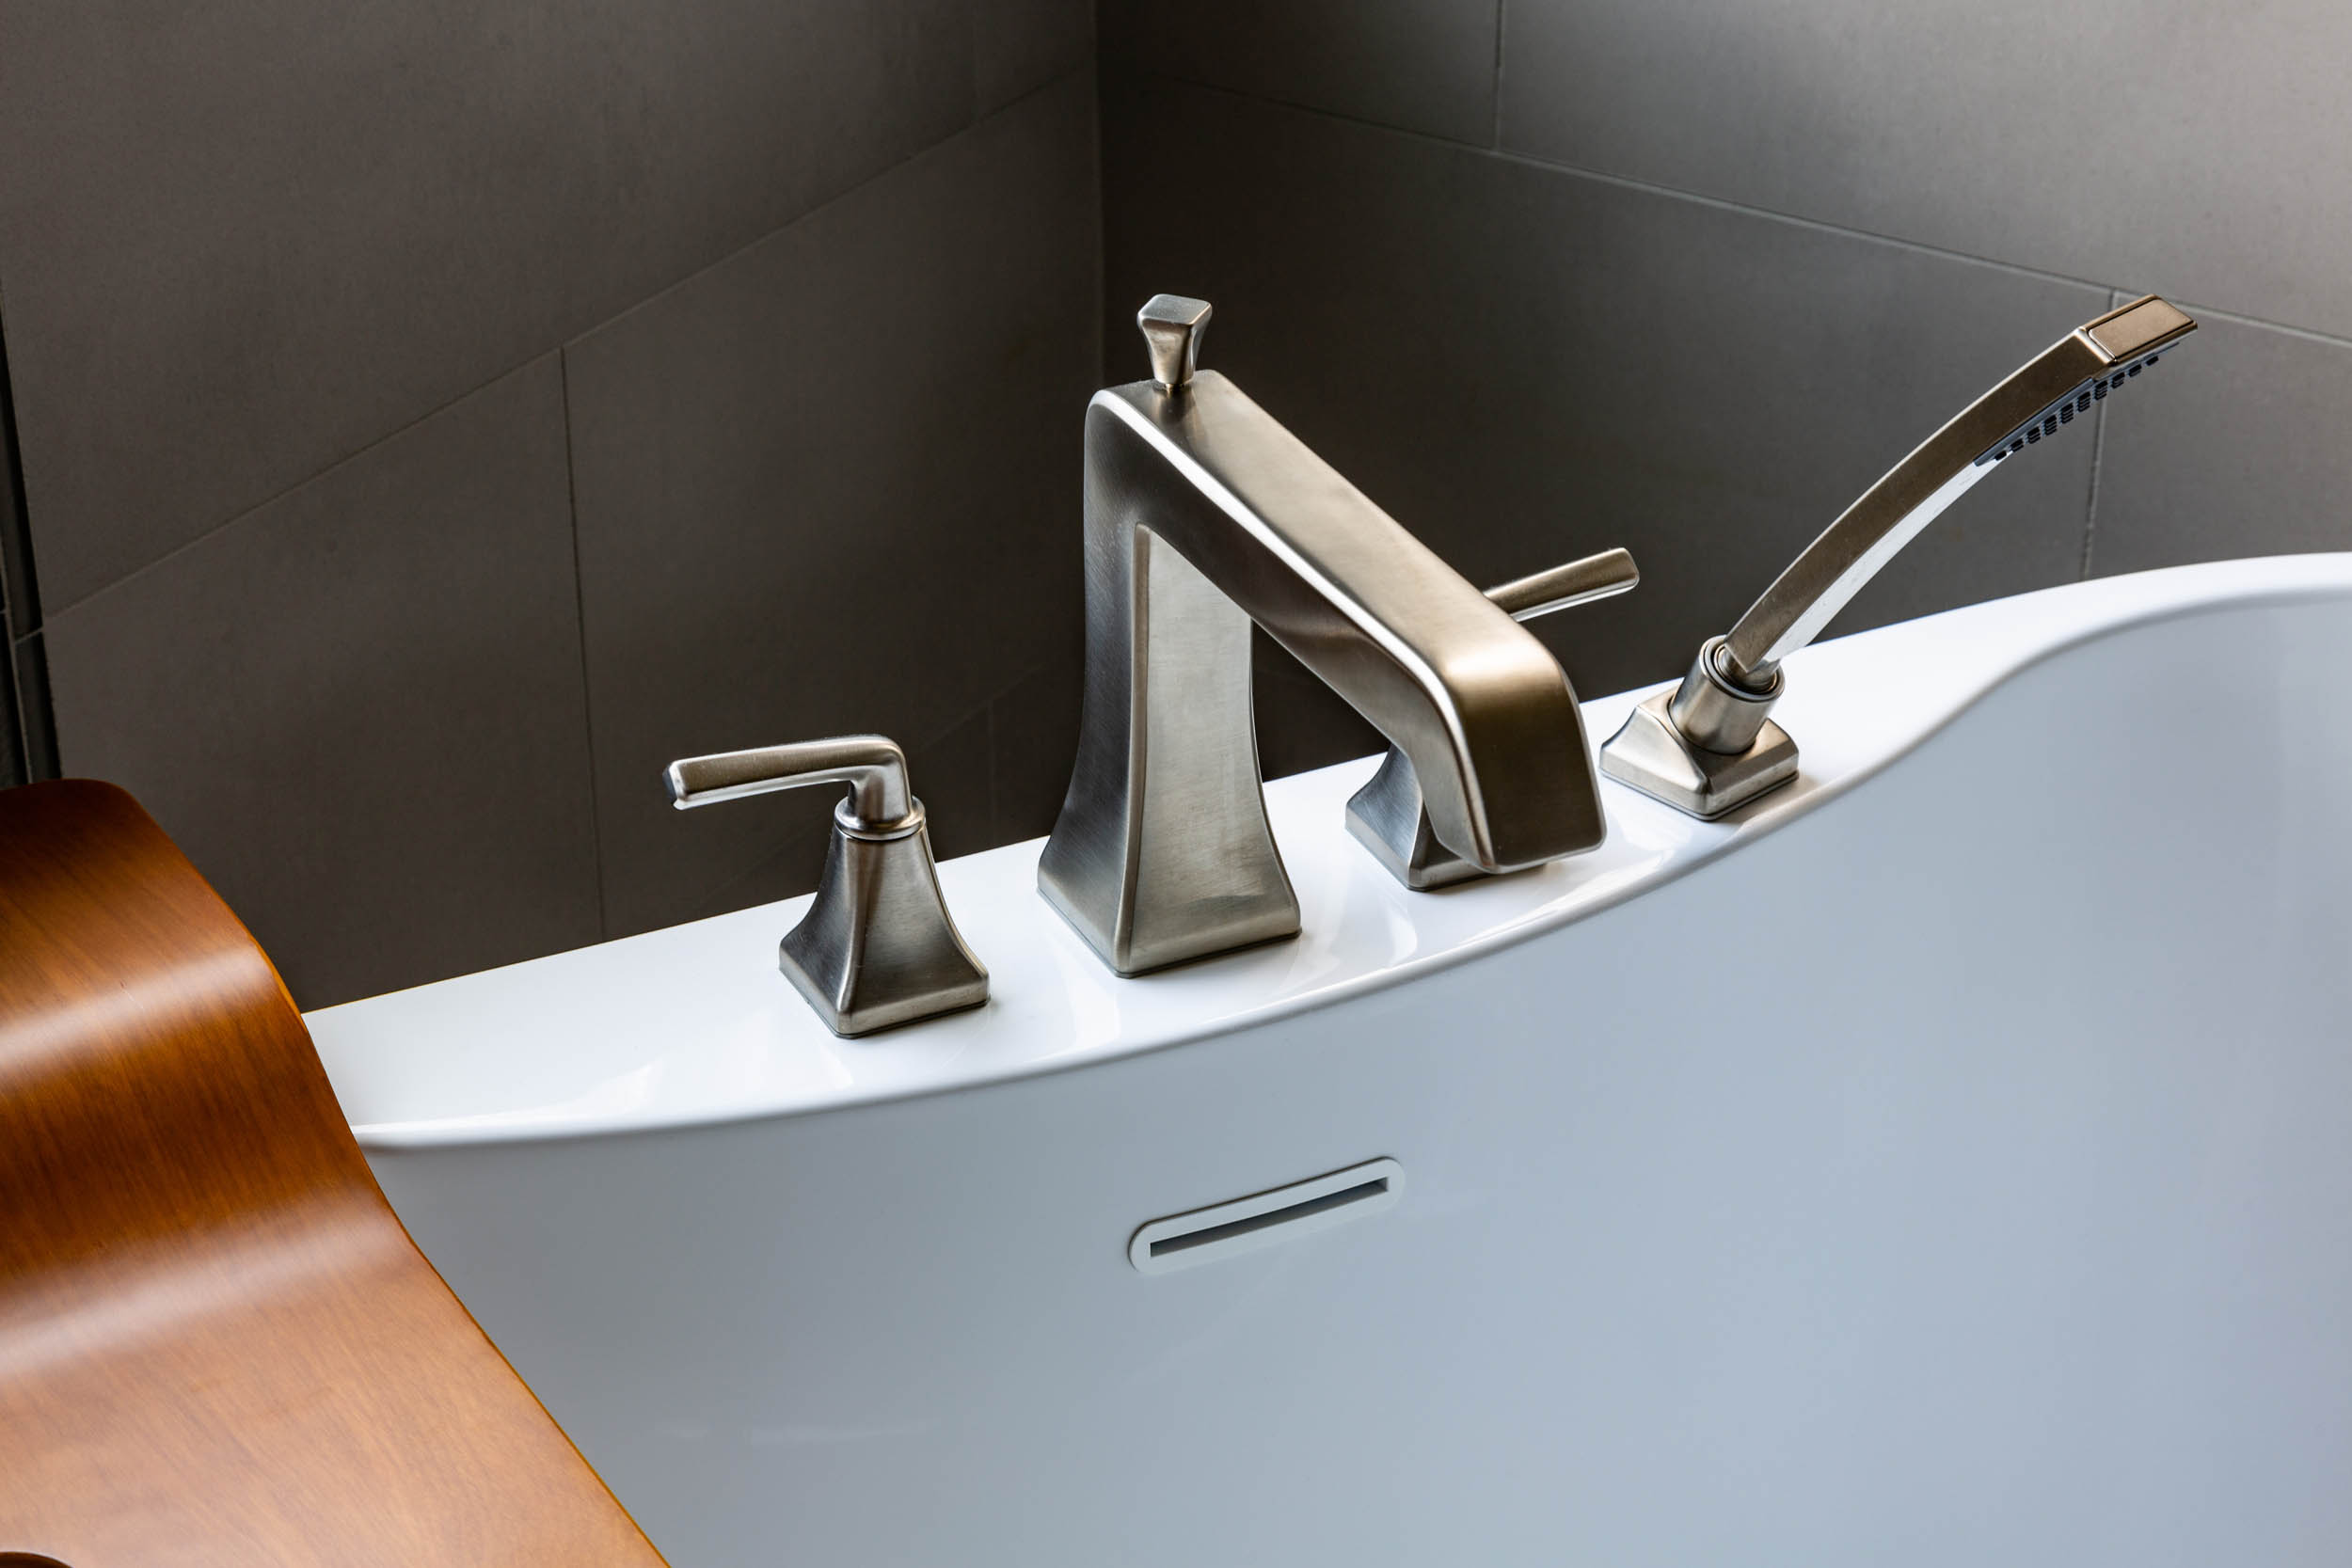 Luxurious bathtub in bathroom remodel with classy faucet hardware by